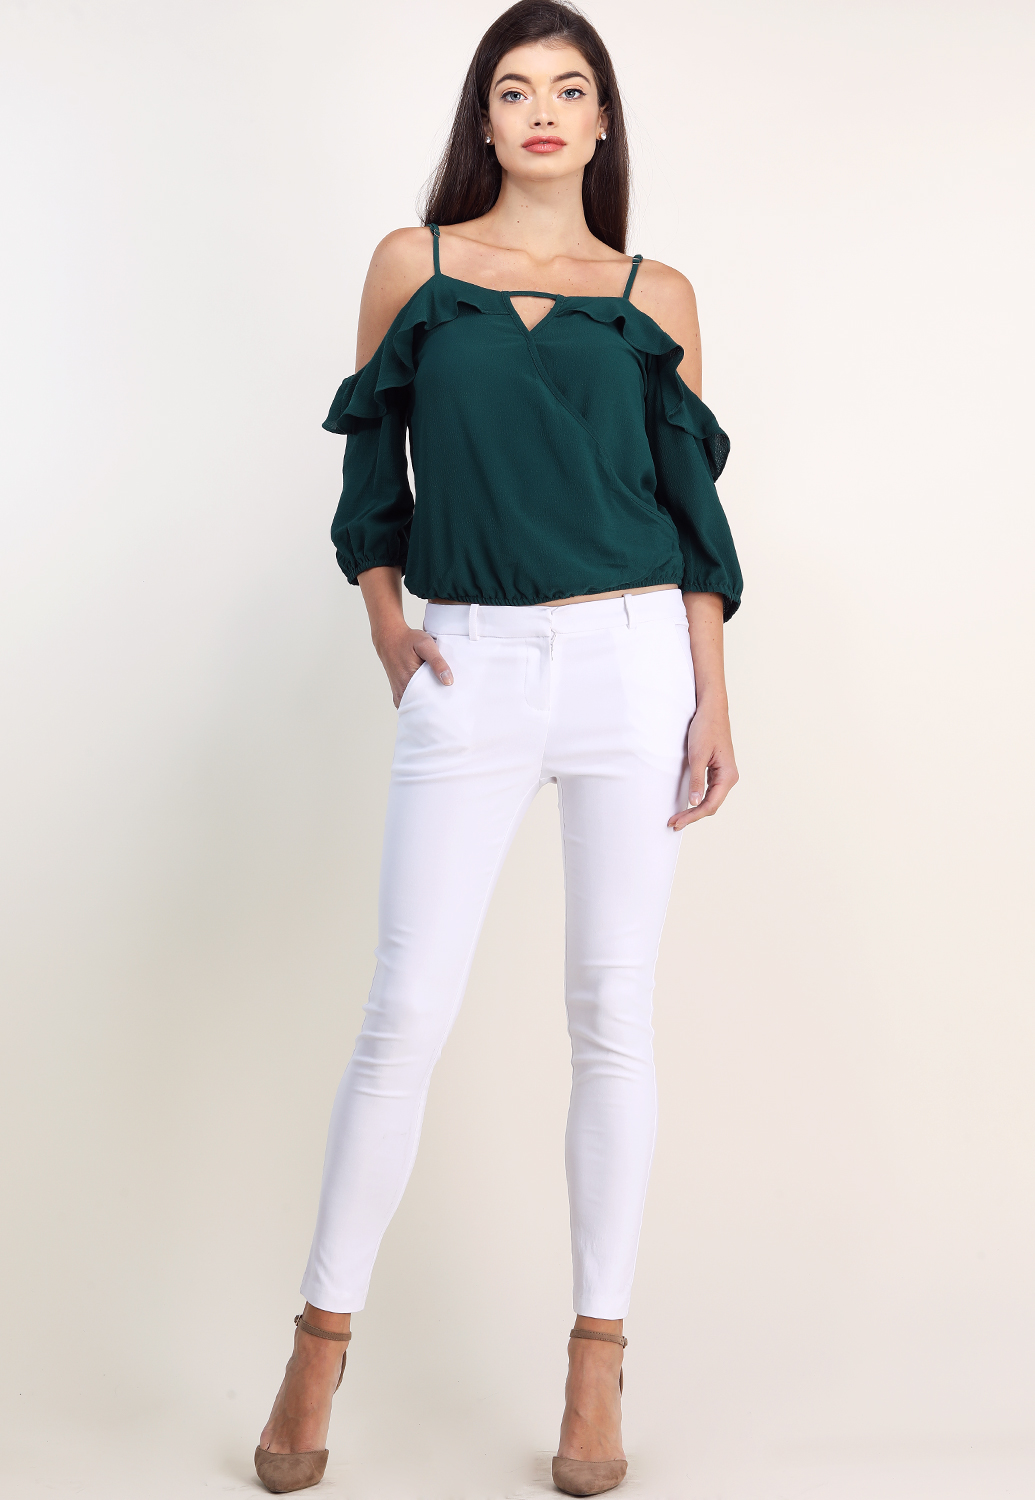 Ruffle Detail Open Shoulder Top